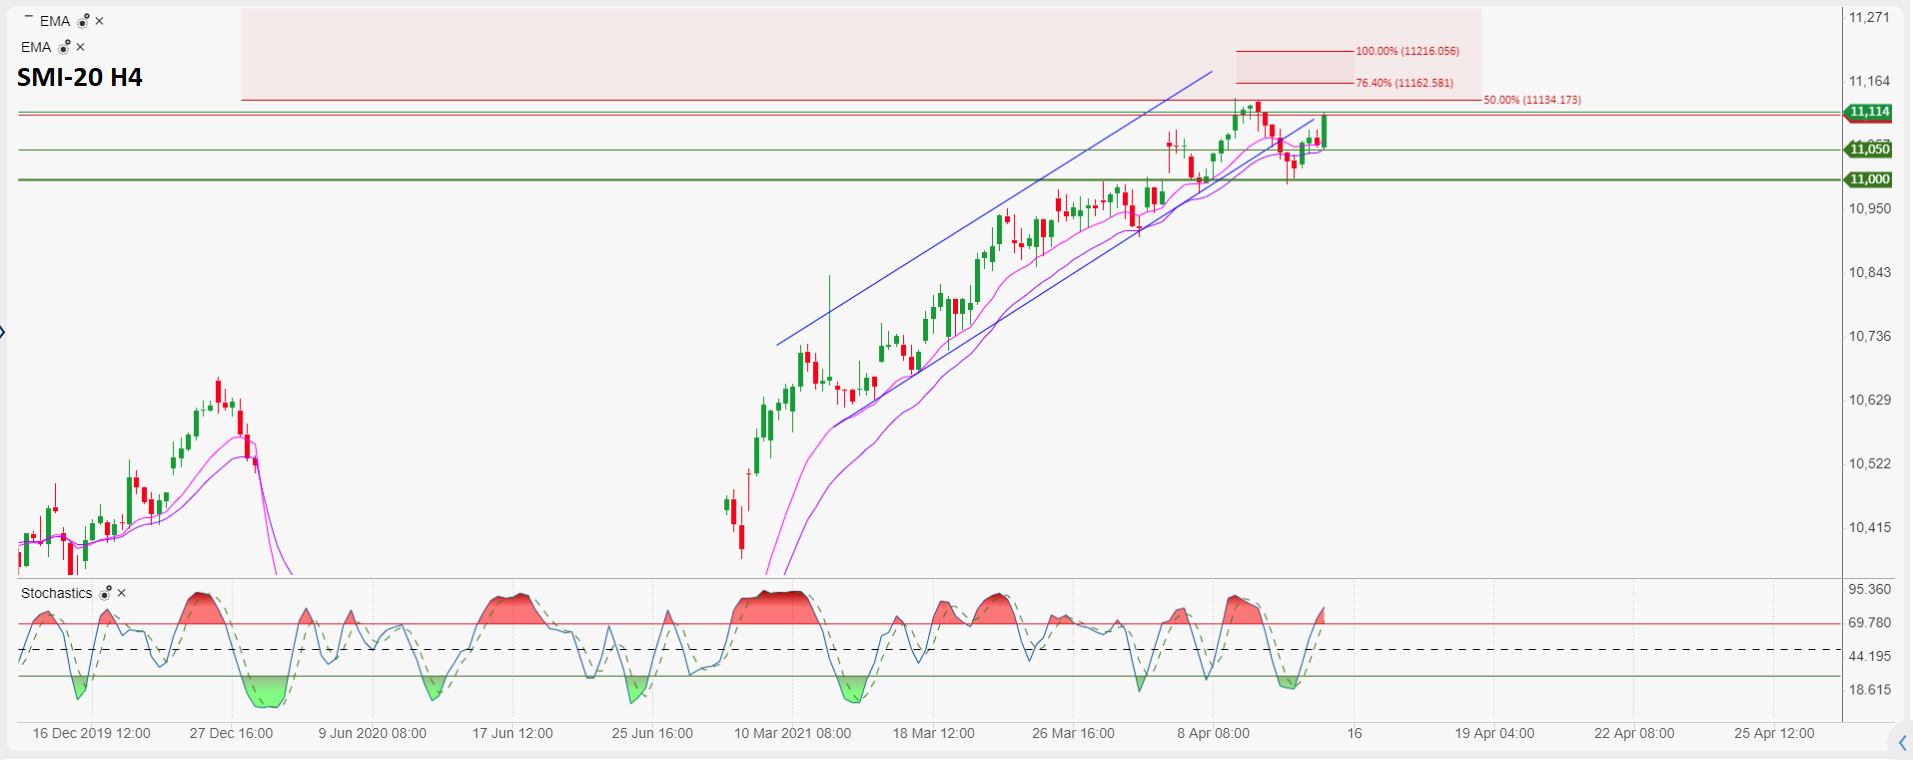 Daily market commentary: The dollar remains the centre of attention, continuing to lose ground